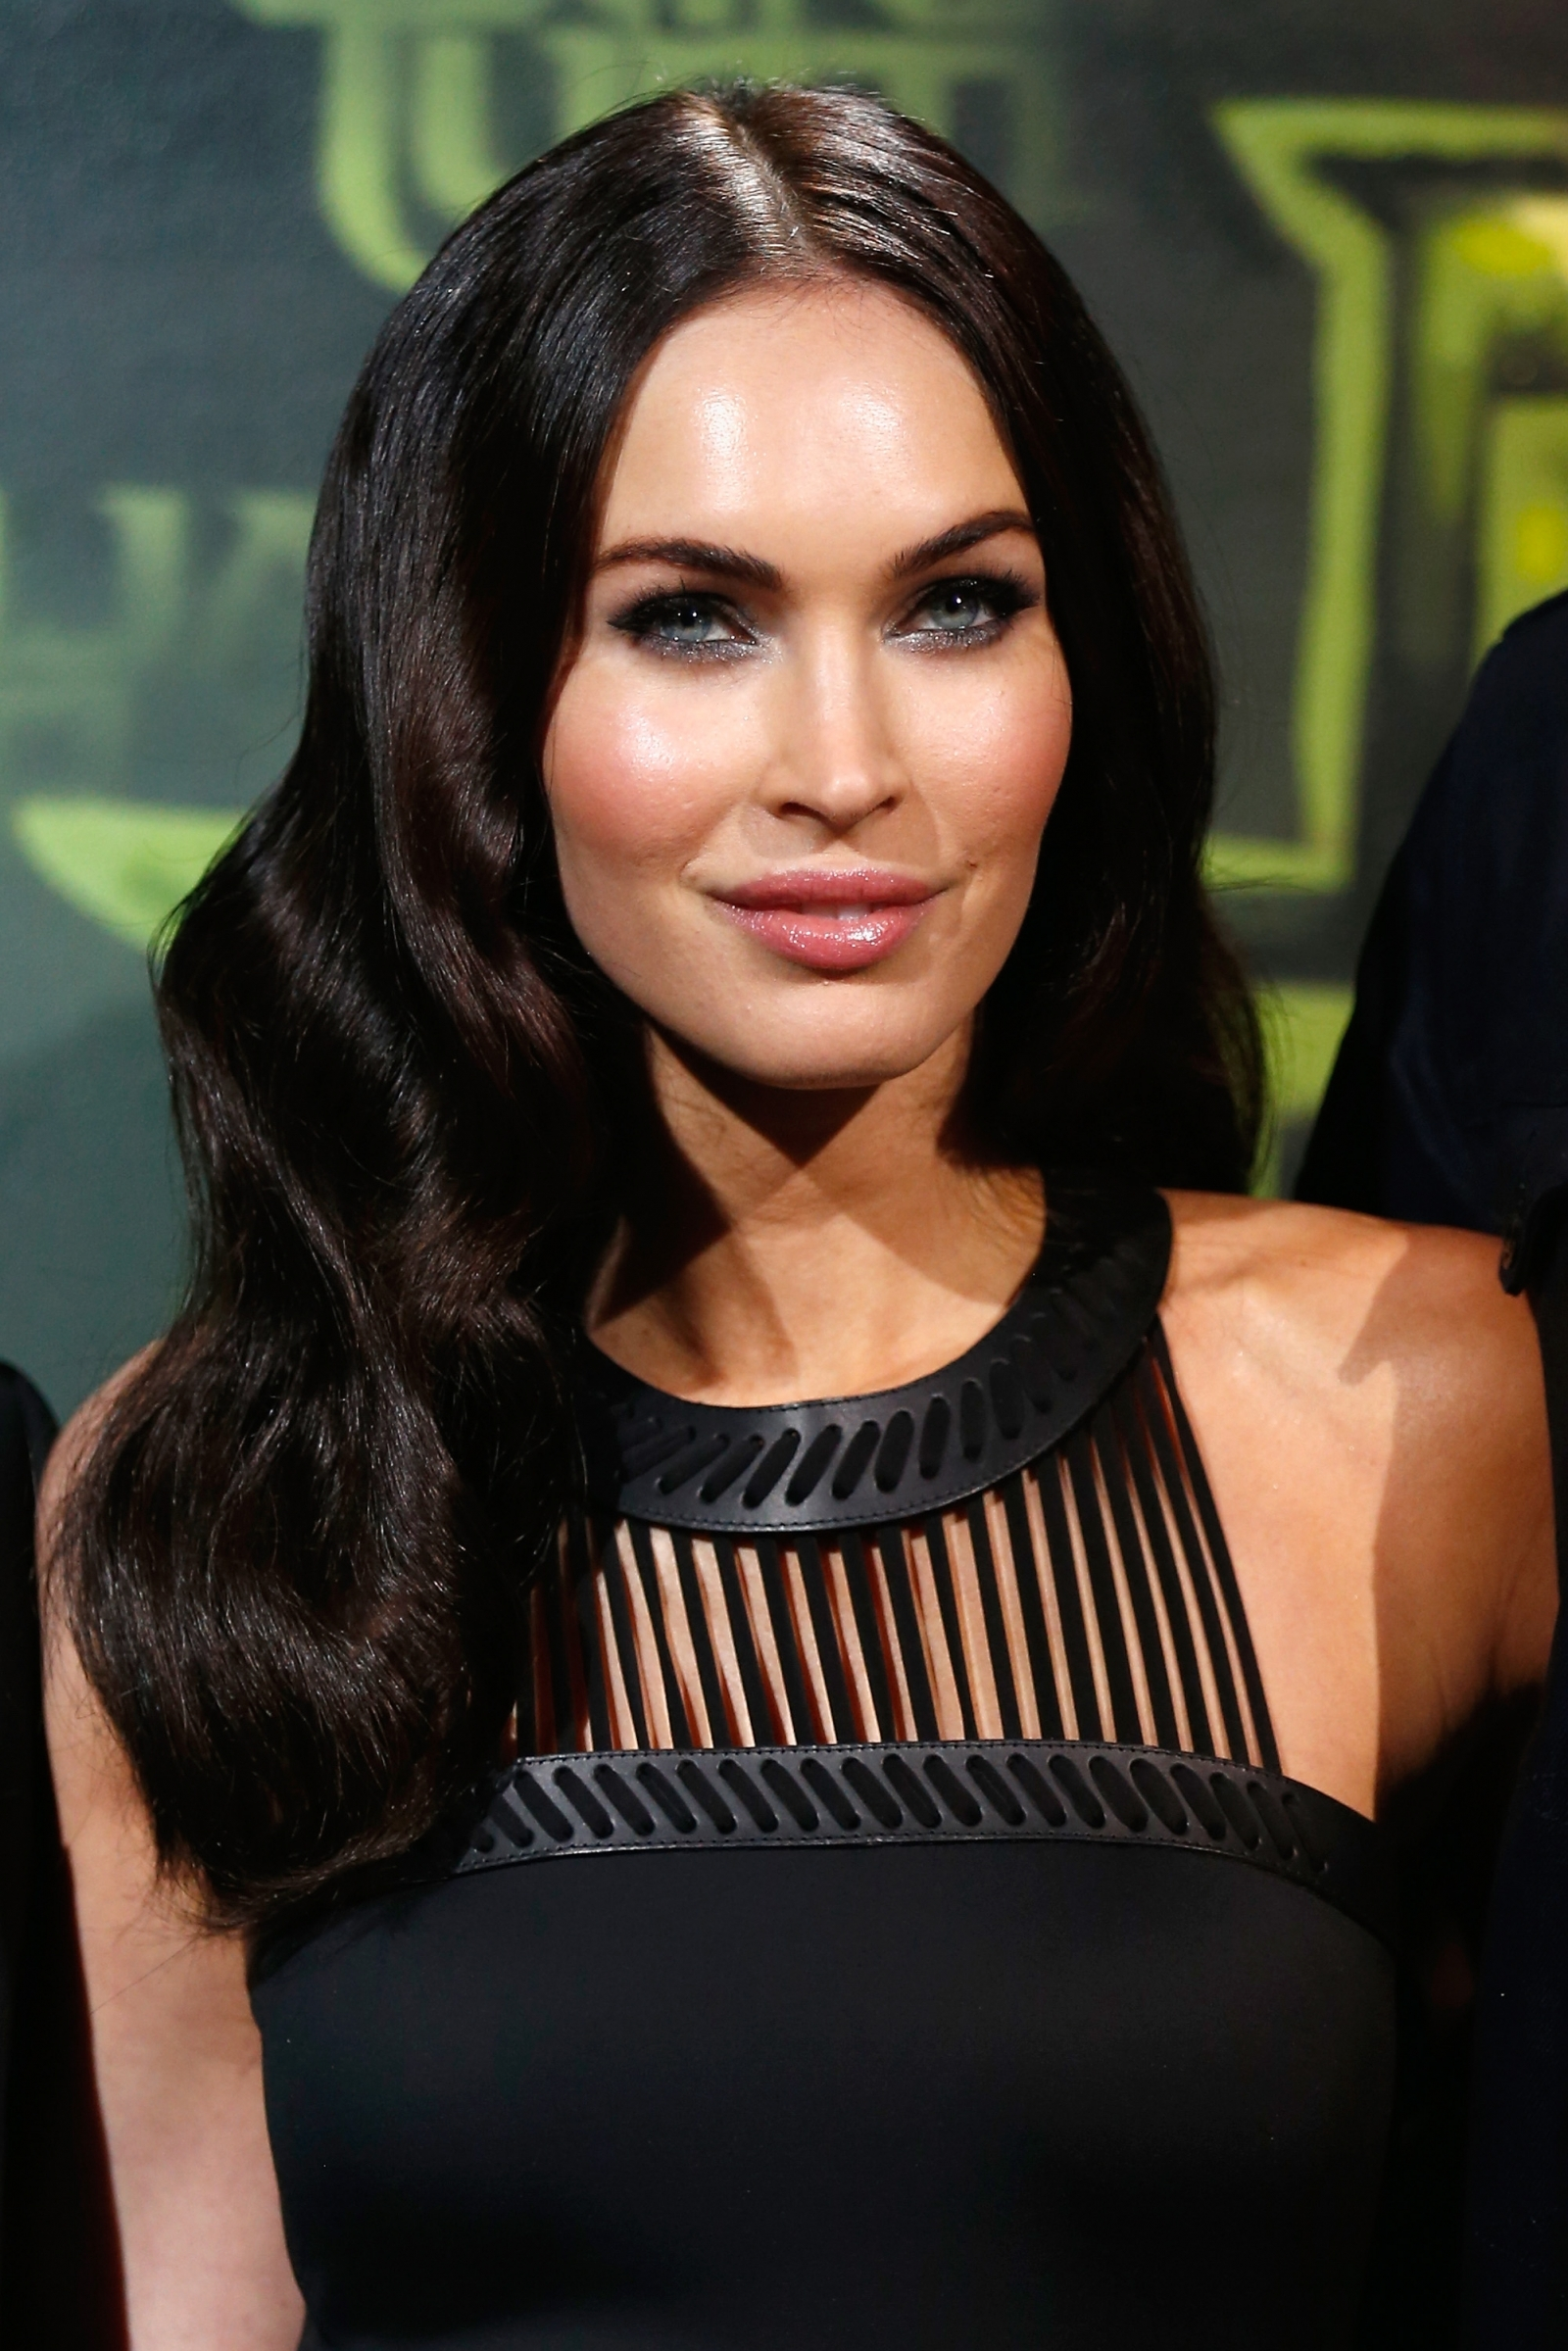 megan fox teases cleavage in sizzling see-through gown as fans freak